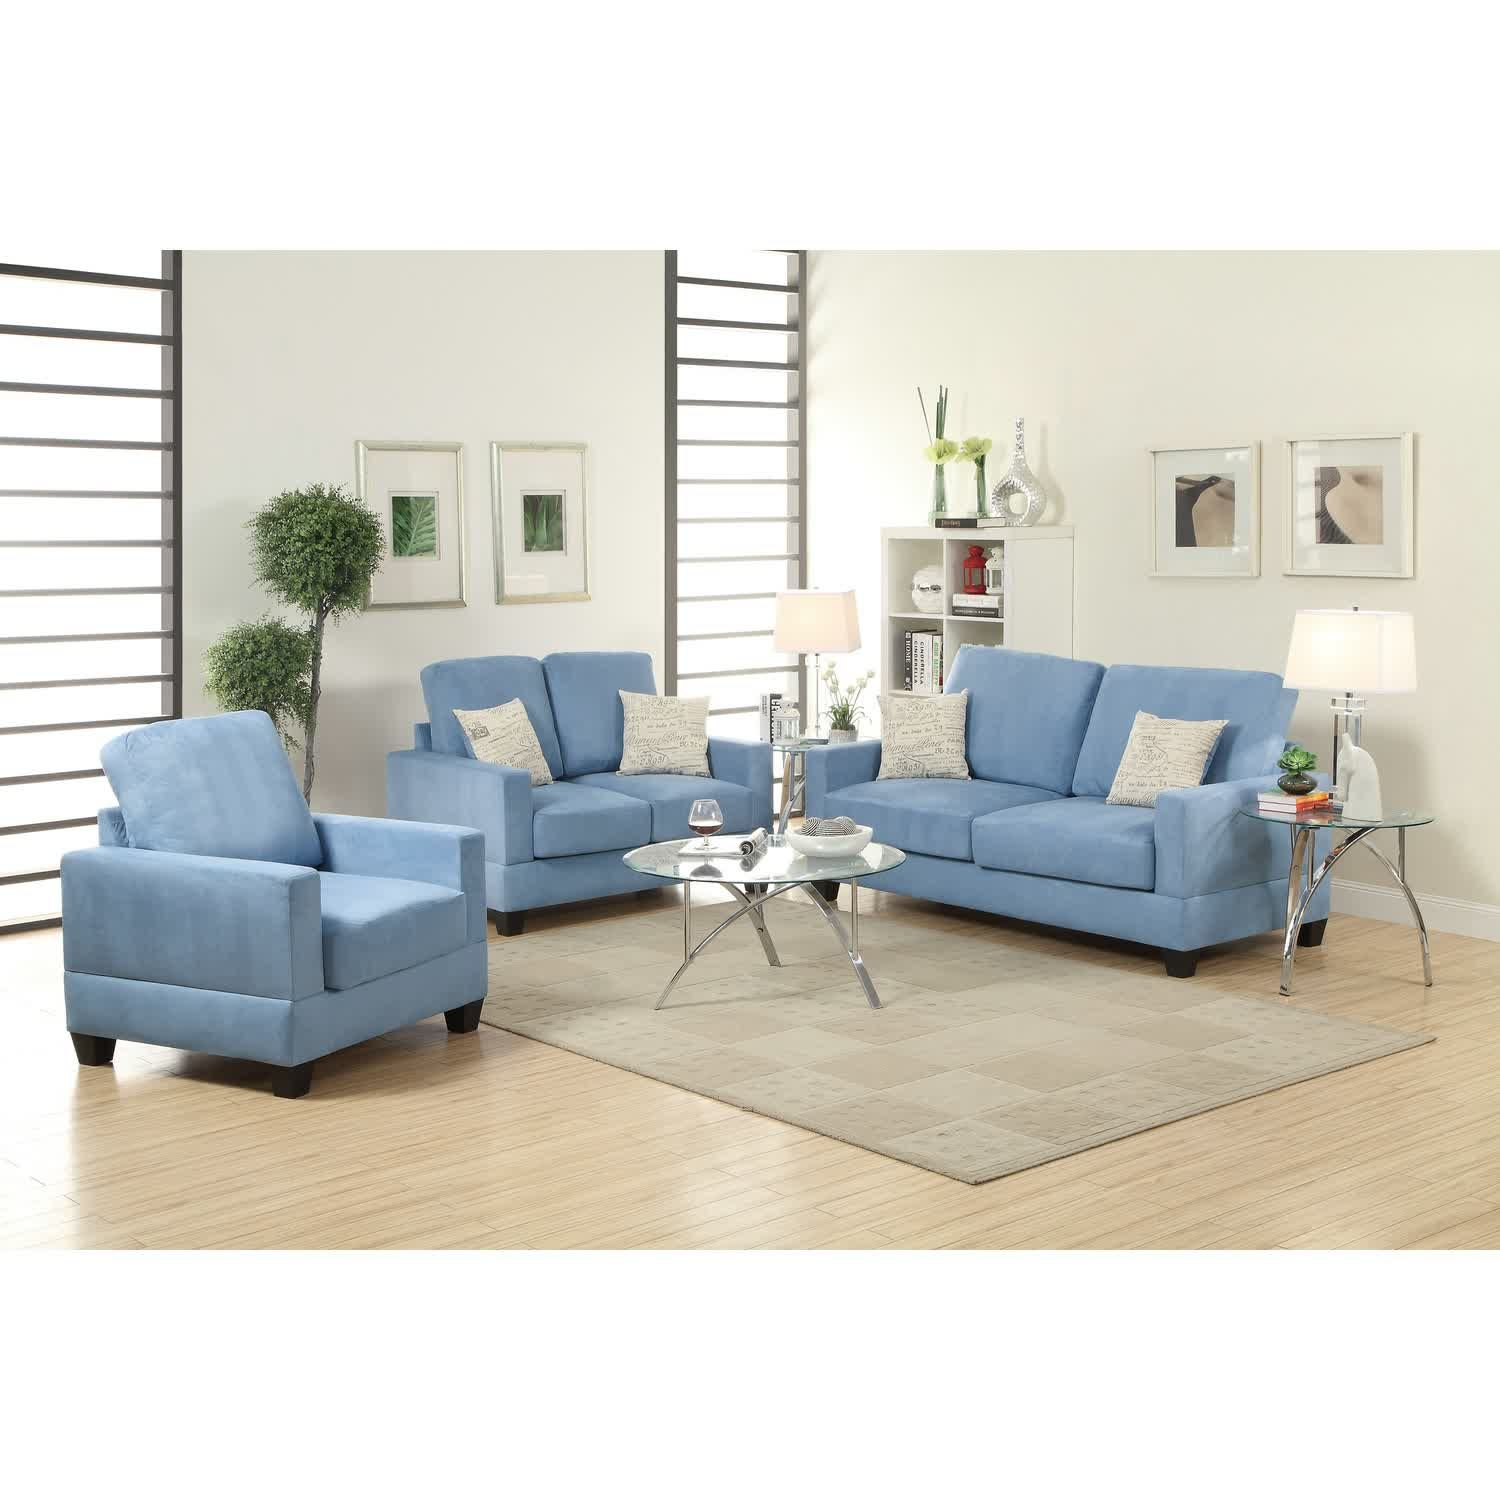 Canvas Of Apartment Size Sectional Selections For Your Small Space Li Modern Living Room Furniture Sets Living Room Sets Furniture Modern Furniture Living Room